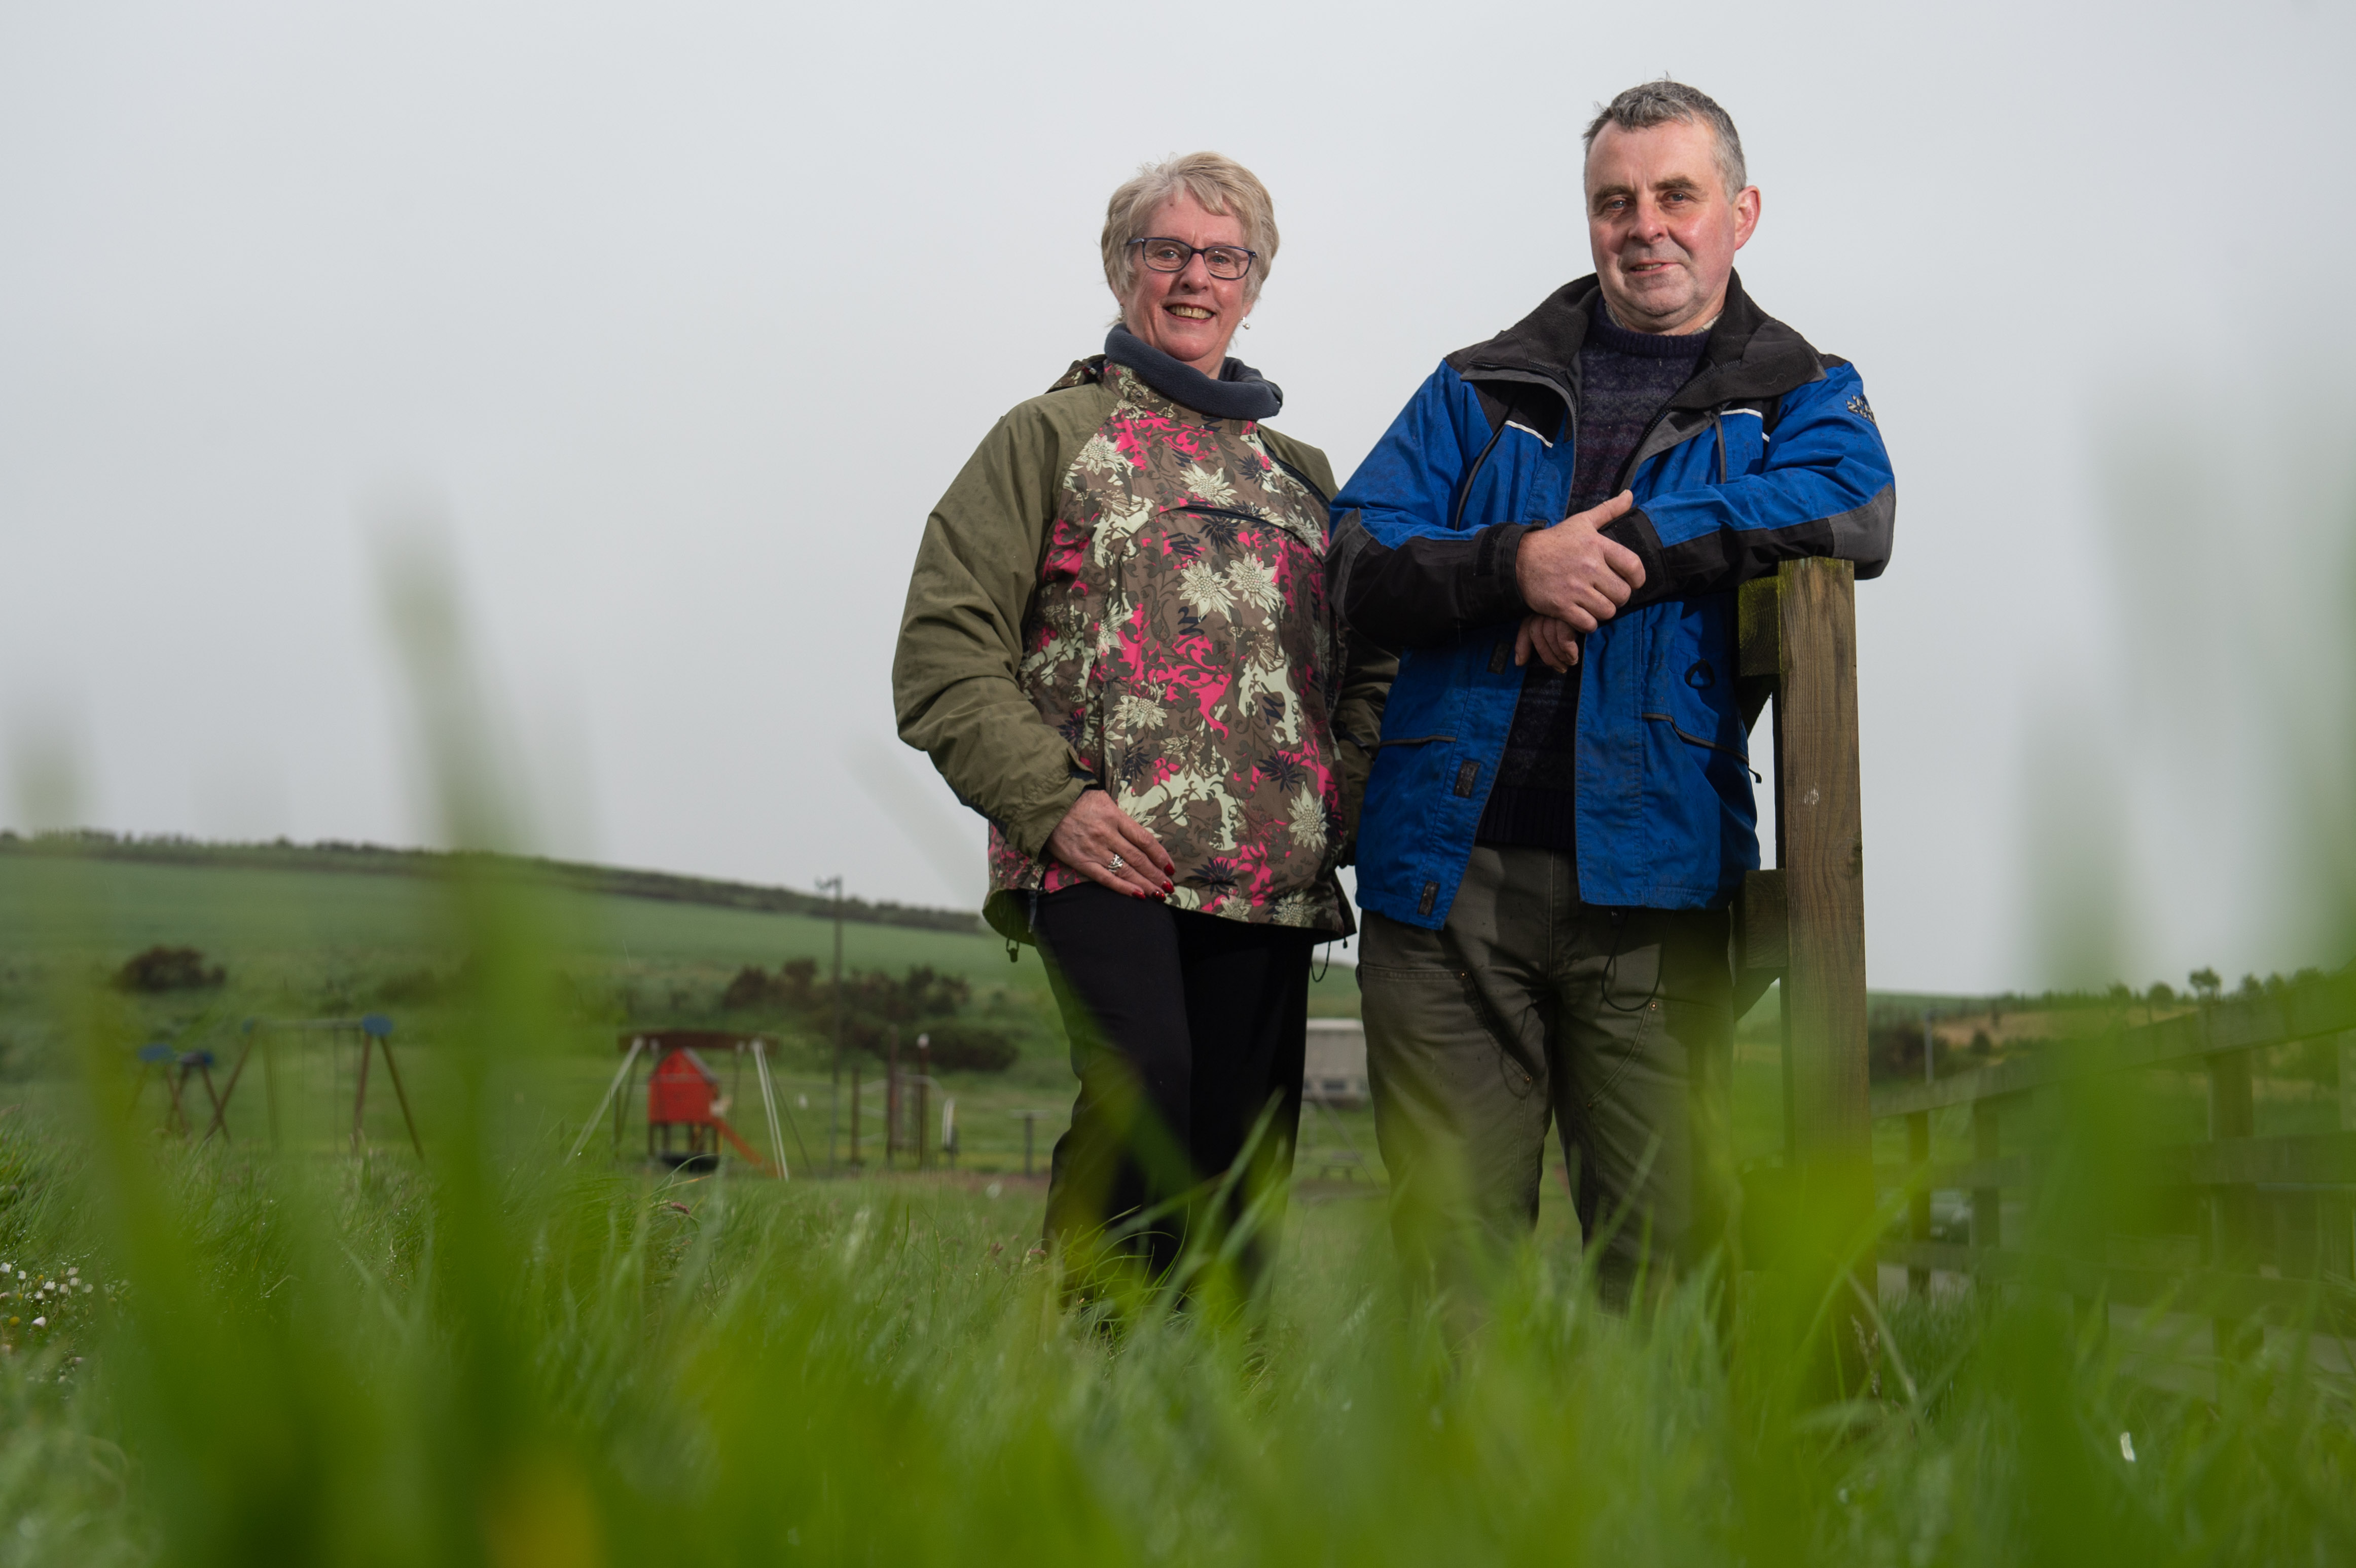 Elizabeth Williamson (Community Councillor for Cullen and Deskford Community Council) and Stewart Black (Chairman of Cullen and Deskford Community Council) at Logie Park, Cullen, Moray.  Picture by Jason Hedges